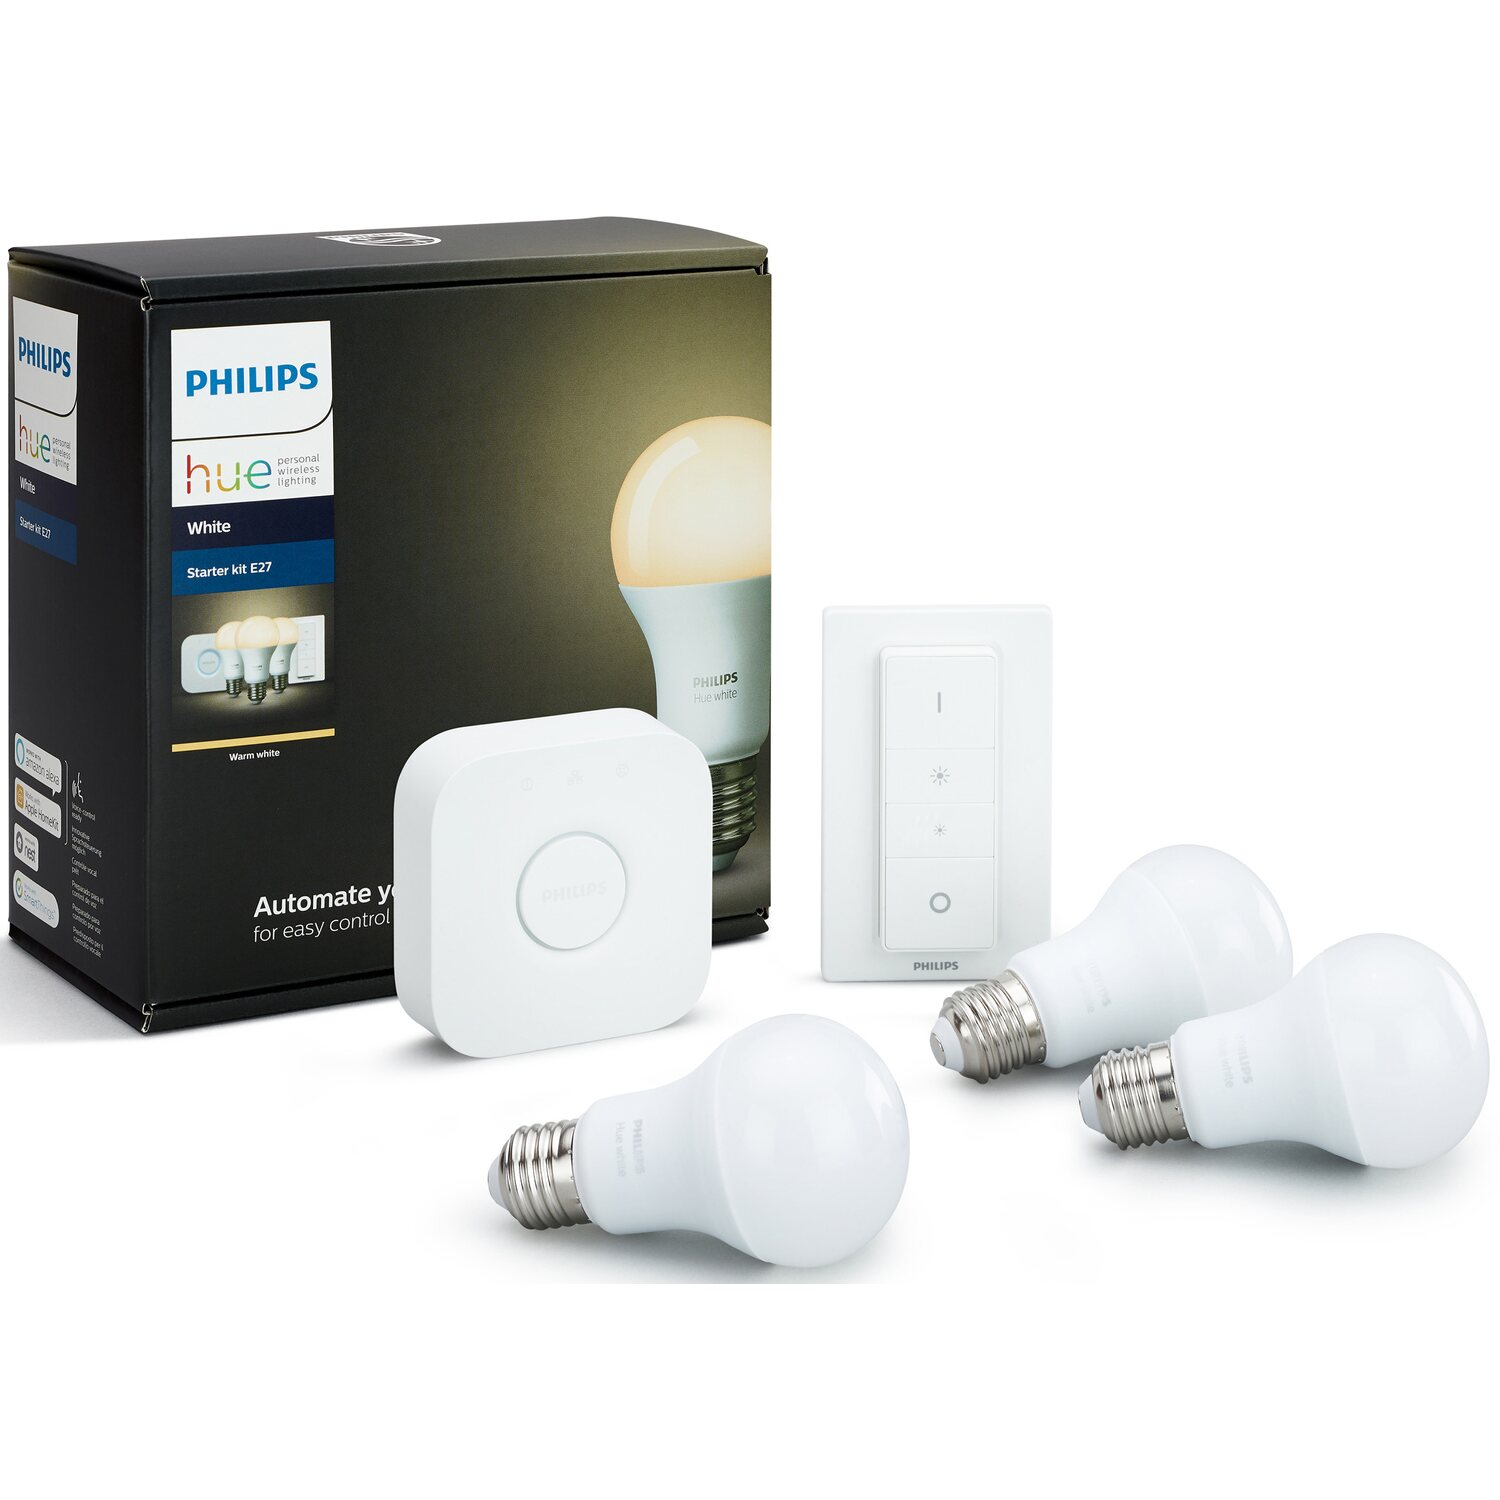 philips hue led lampe white starter kit e27 9 5 w eek a kaufen bei obi. Black Bedroom Furniture Sets. Home Design Ideas